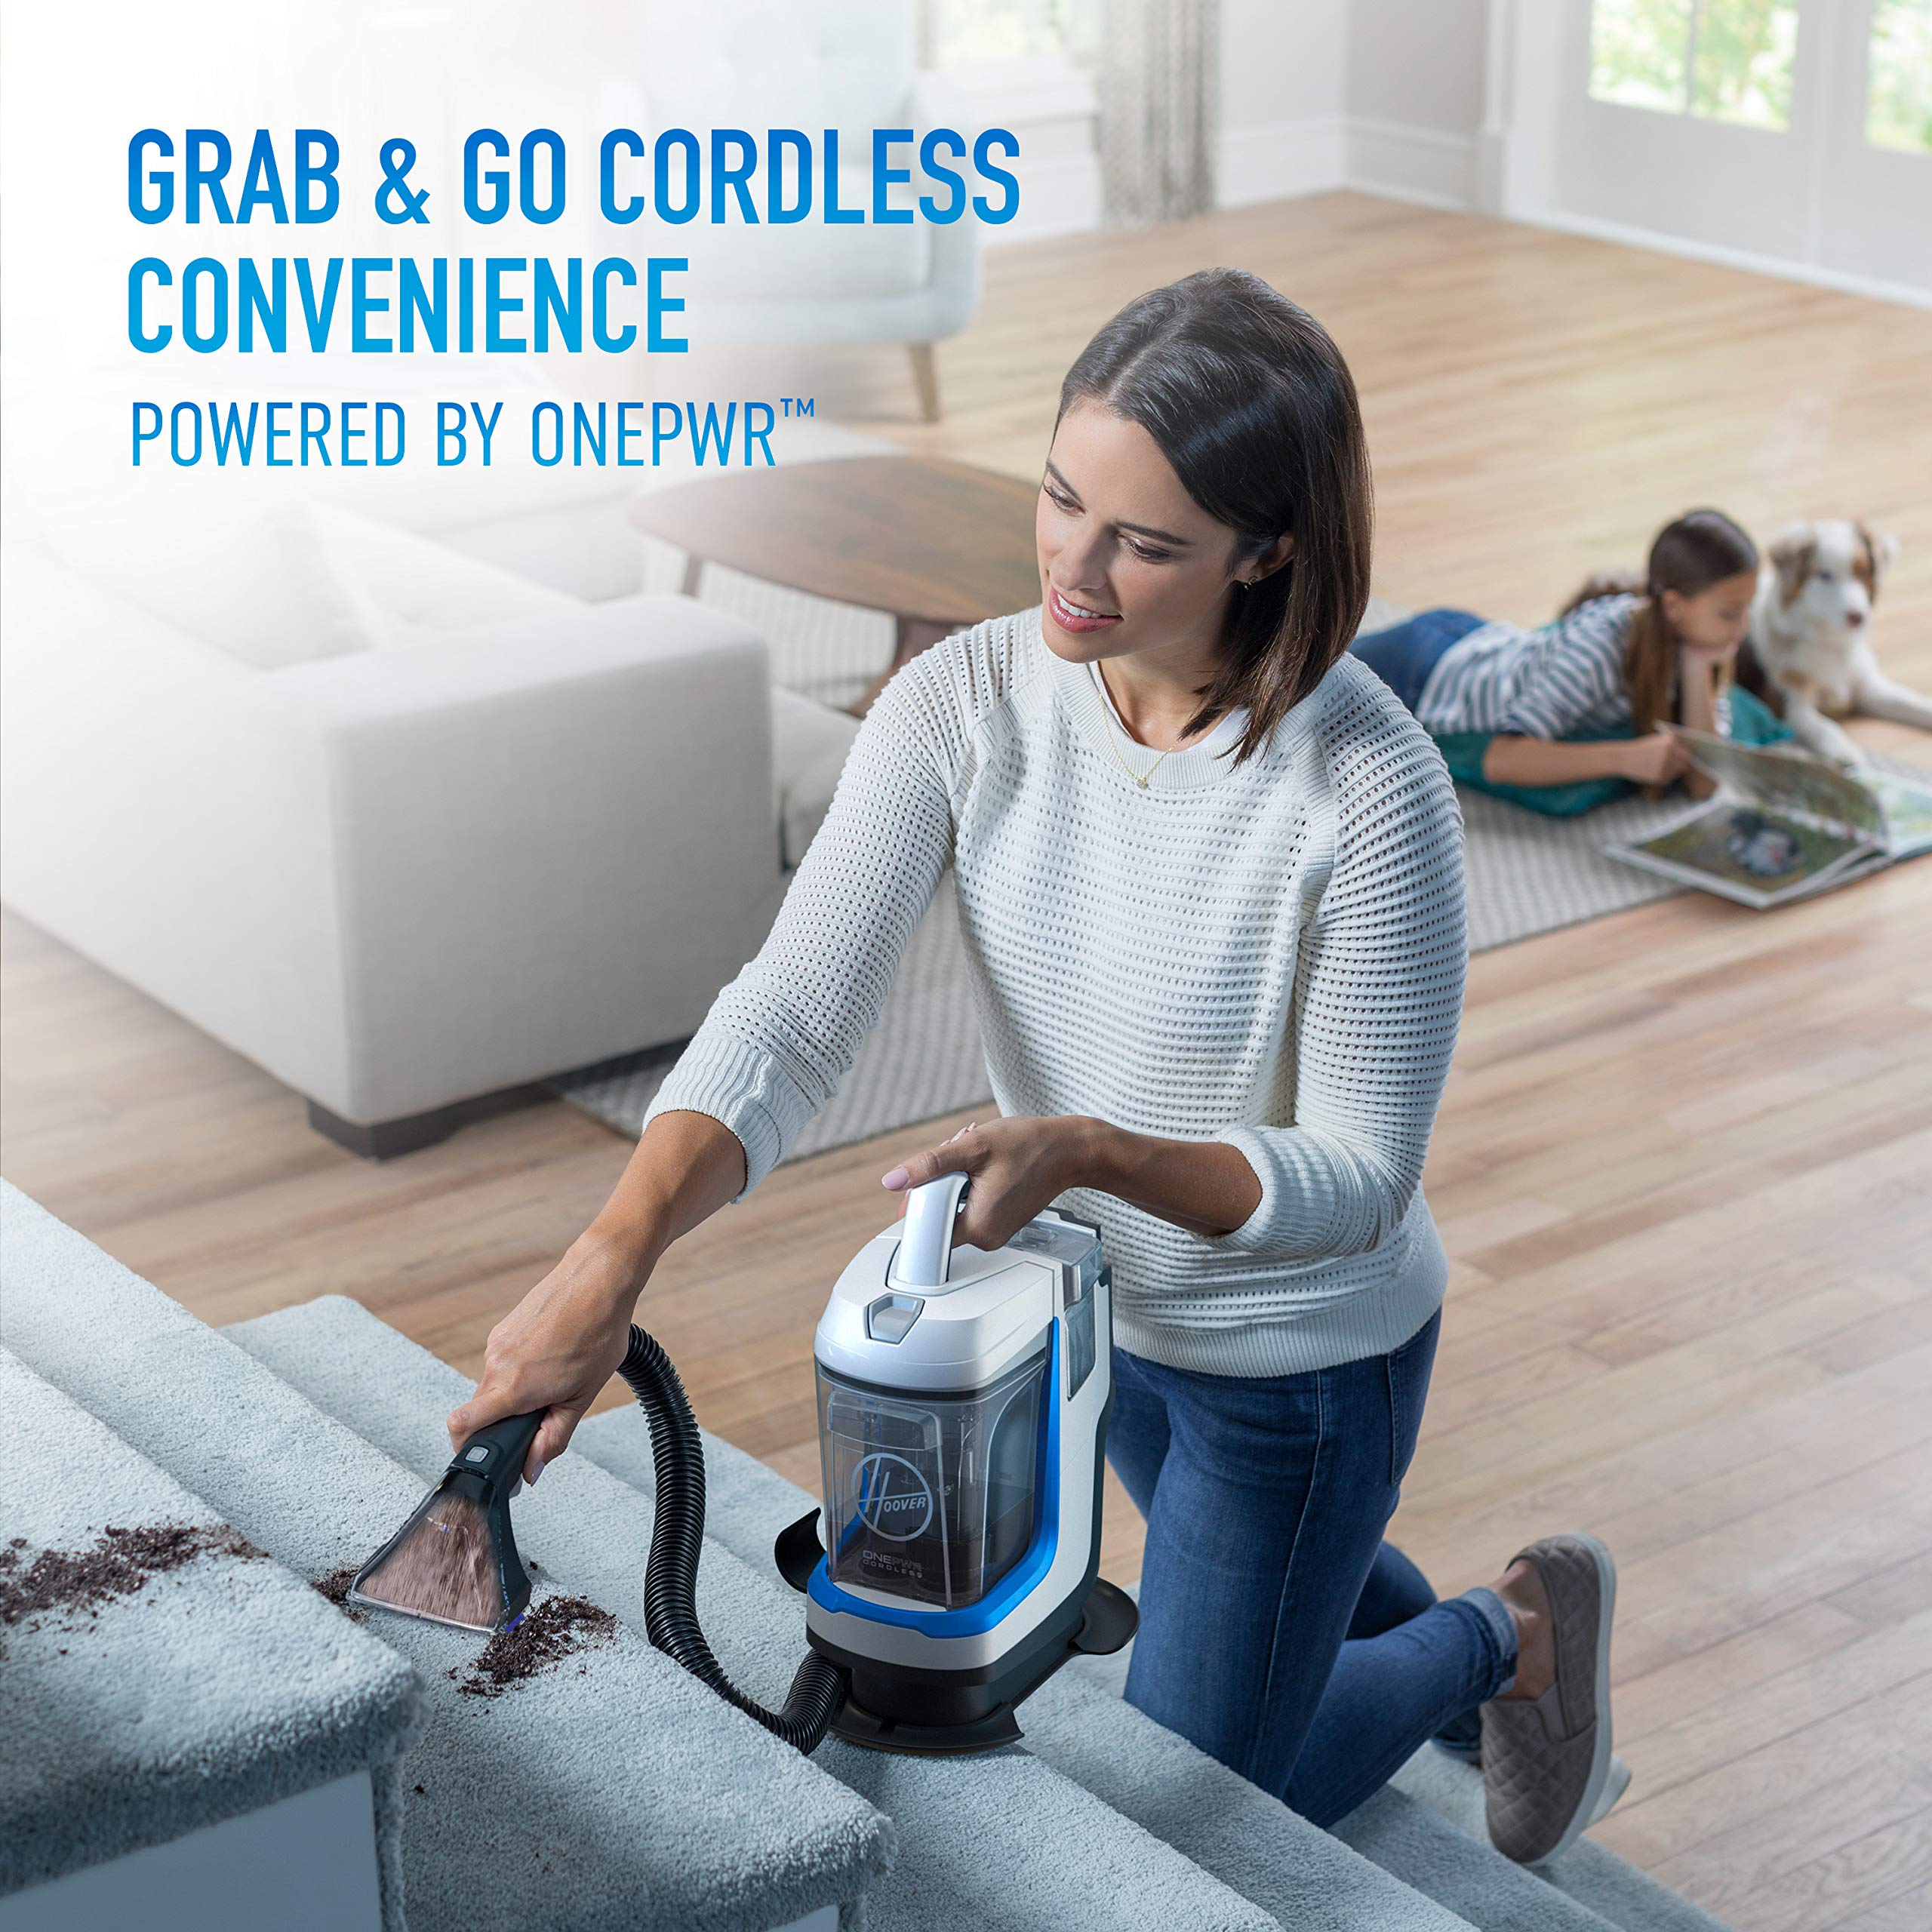 Hoover ONEPWR Spotless GO Cordless Carpet and Upholstery Cleaner, Portable, Lightweight, BH12001, White by Hoover (Image #2)